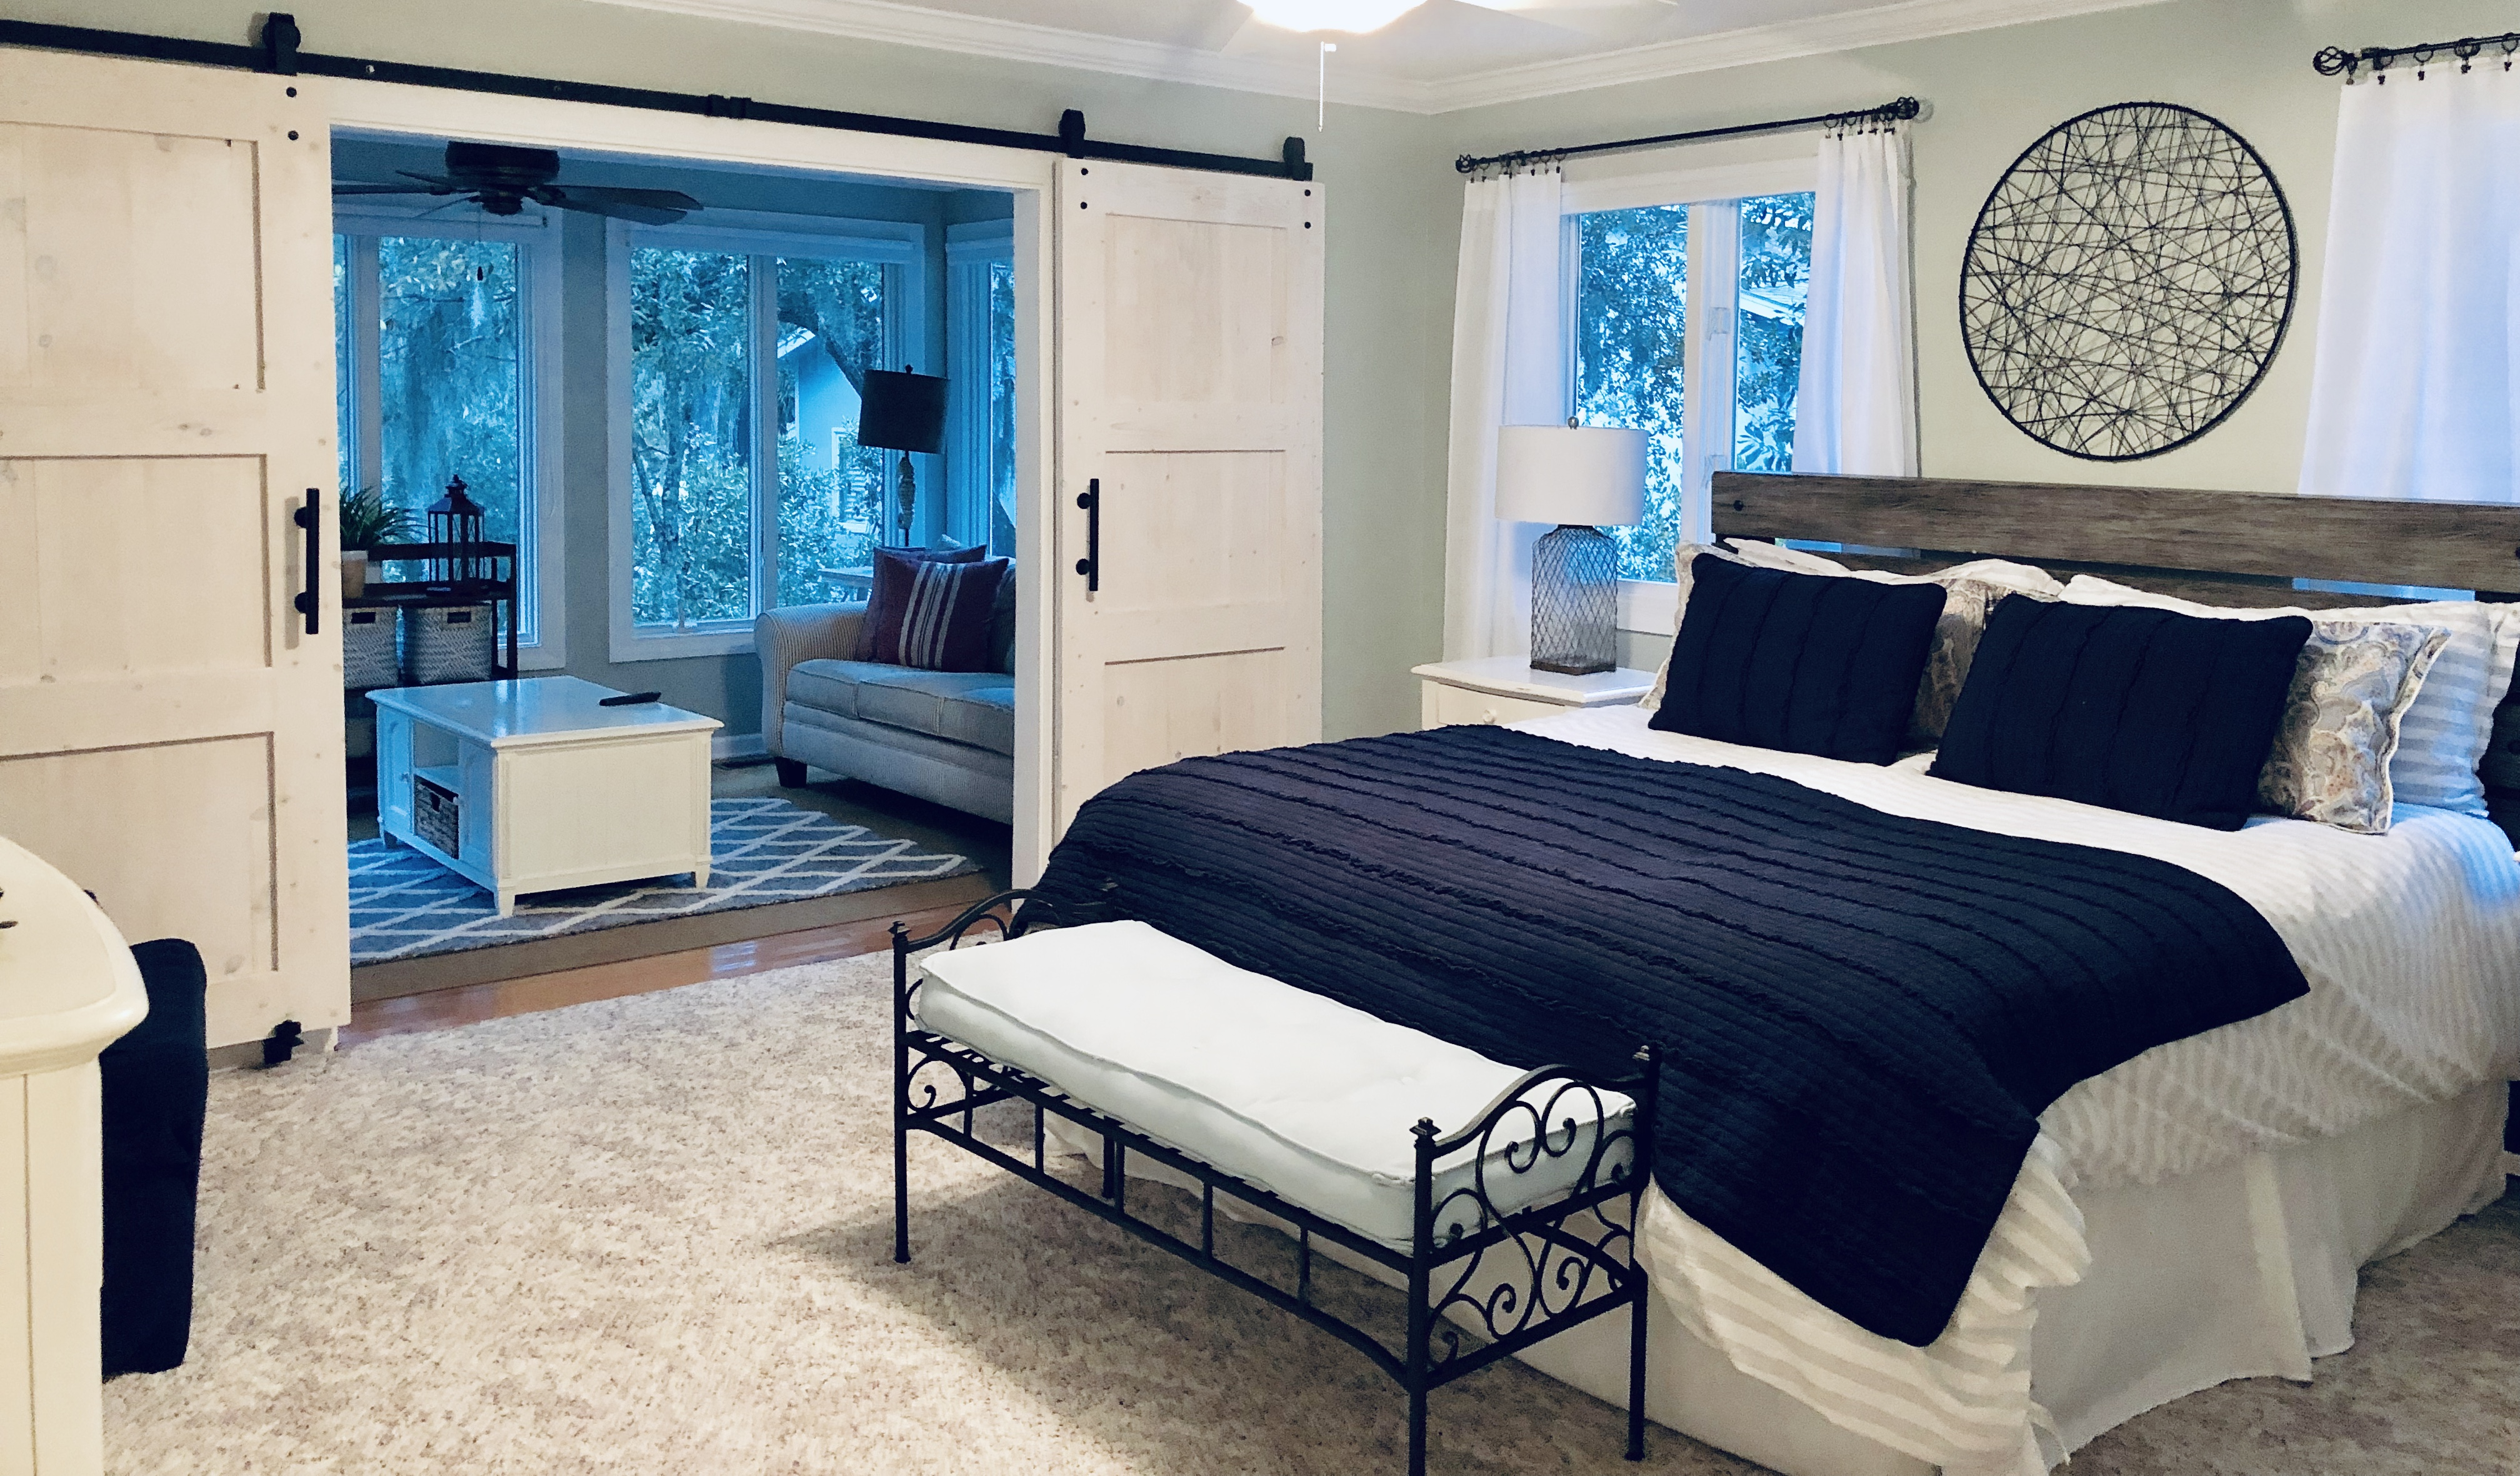 Barn Doors close off sun room from the master bedroom - with a pull out bed with new foam mattress for the kiddos!